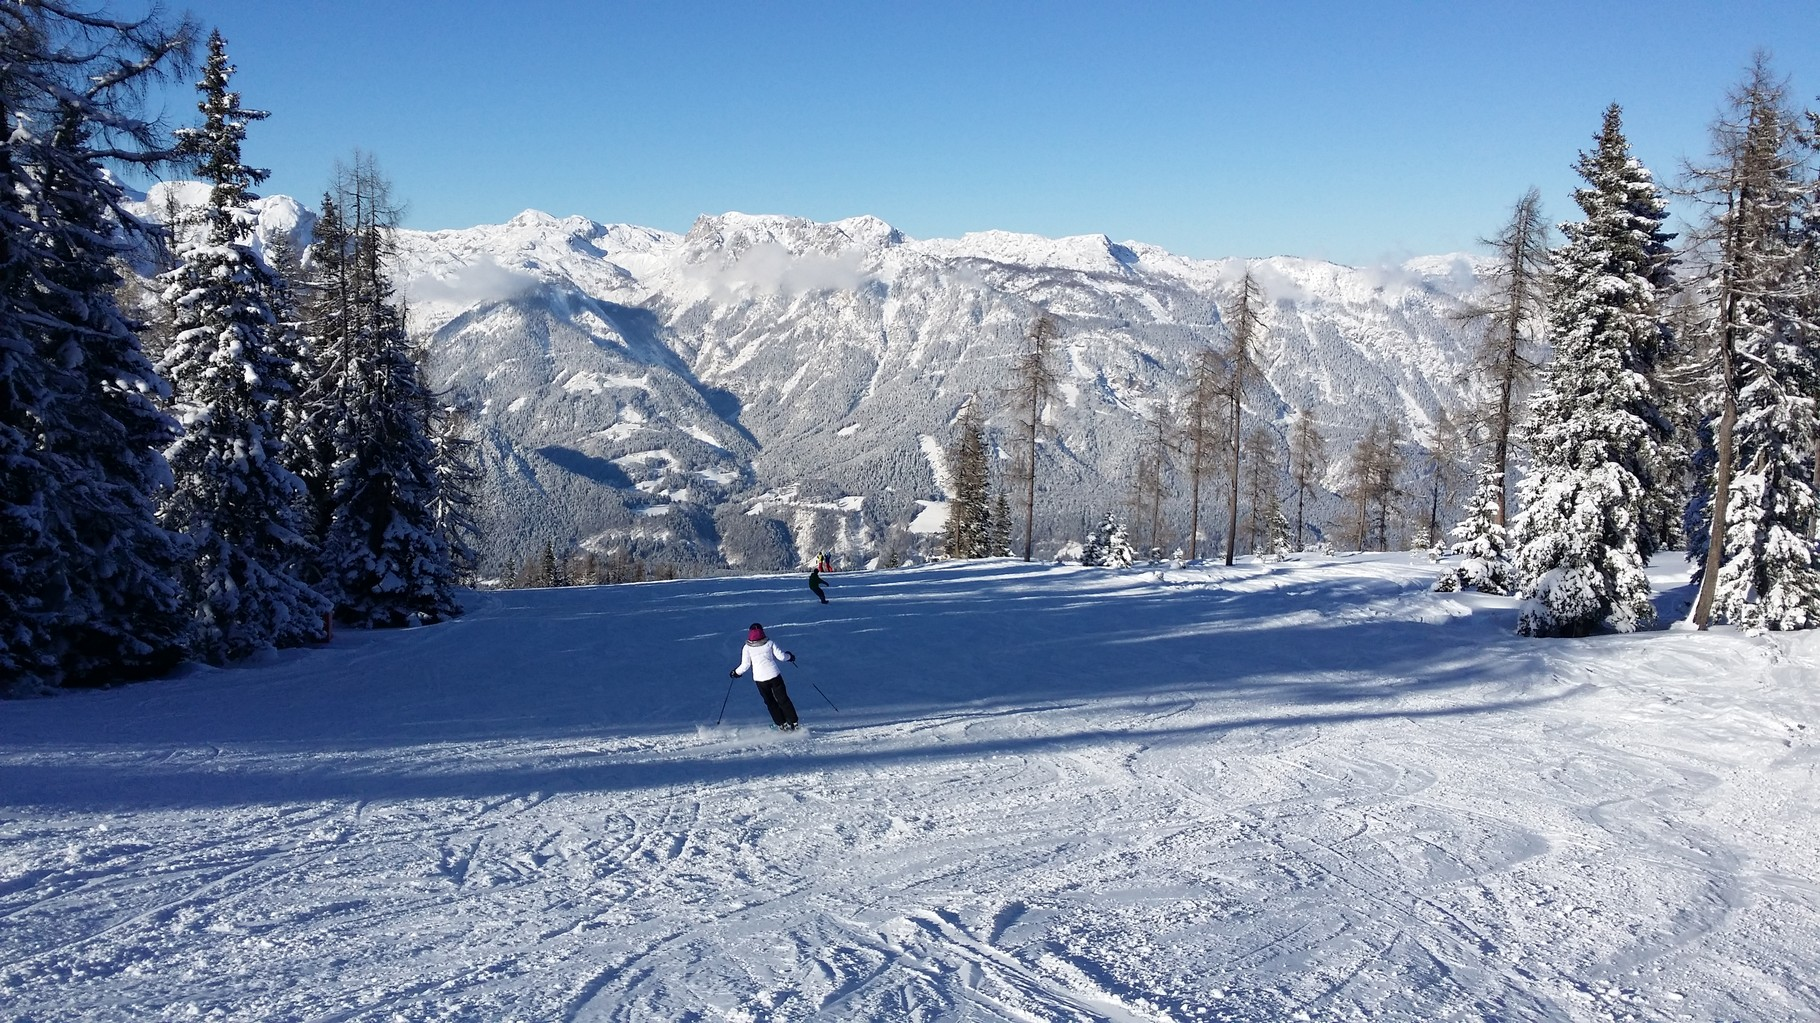 Easy and difficult slopes